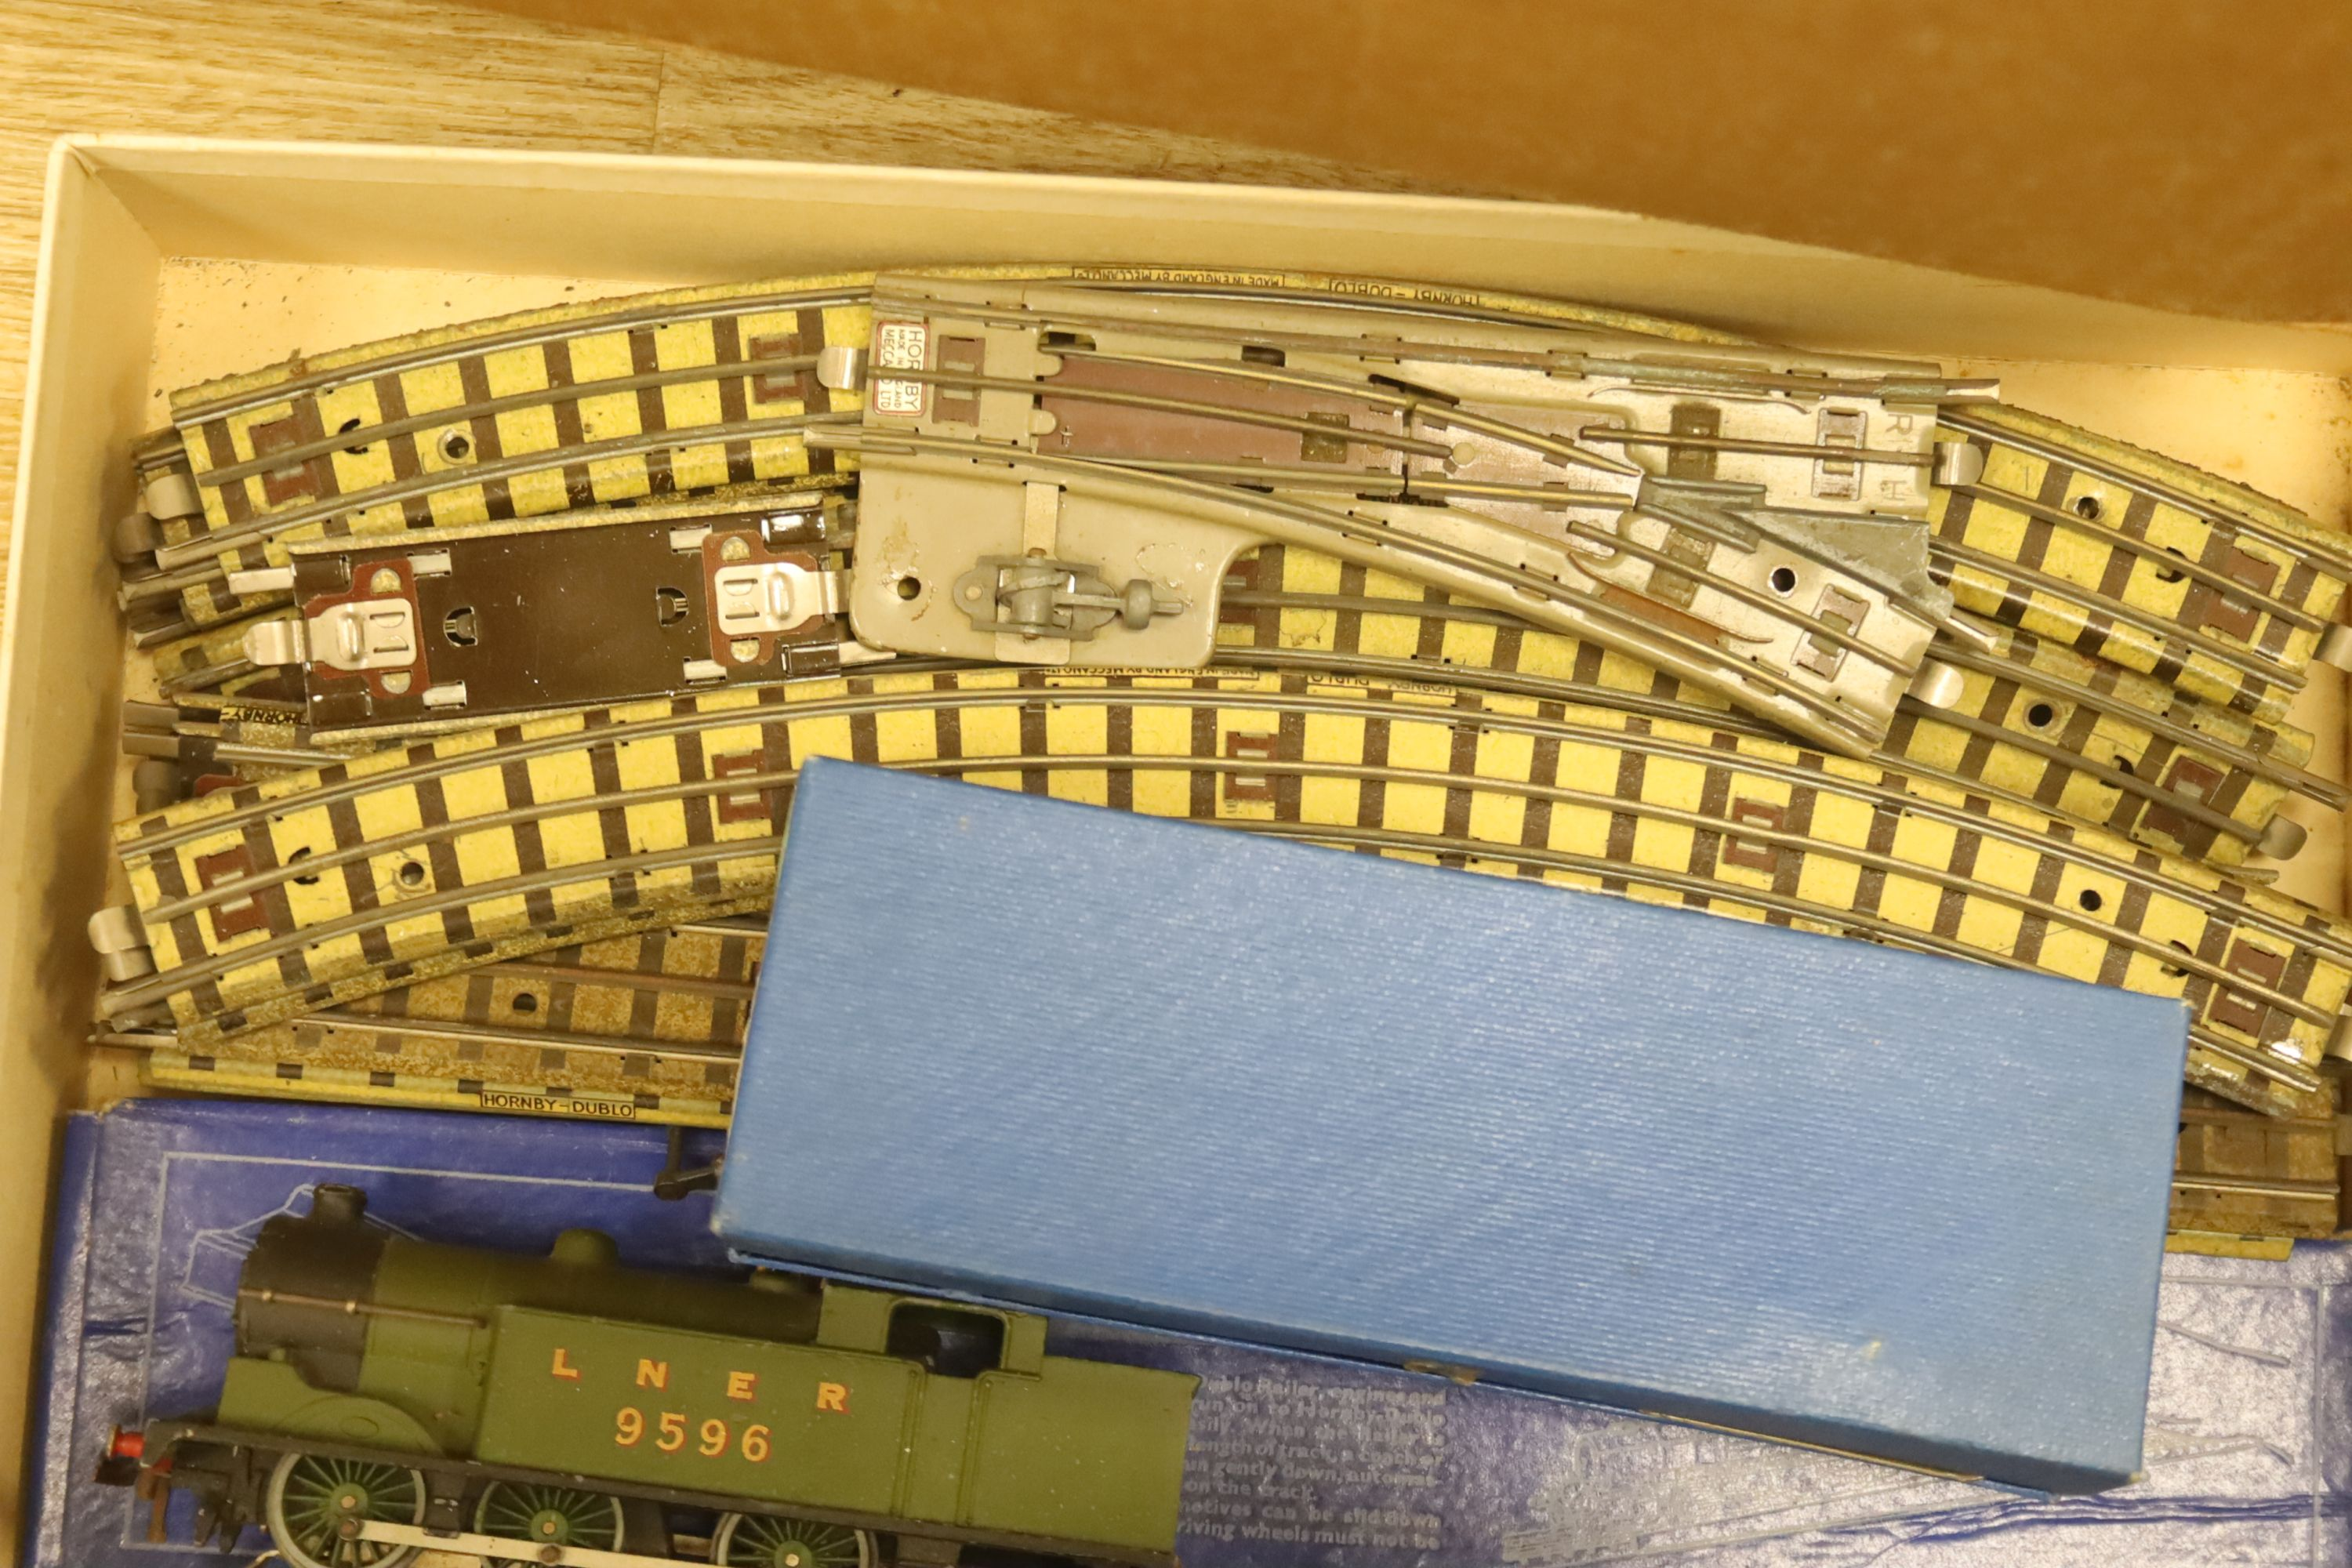 A Hornby Dublo EDG7 tank goods train set, an EDL 18 2-6-4 tank locomotive boxed, one other - Image 5 of 5